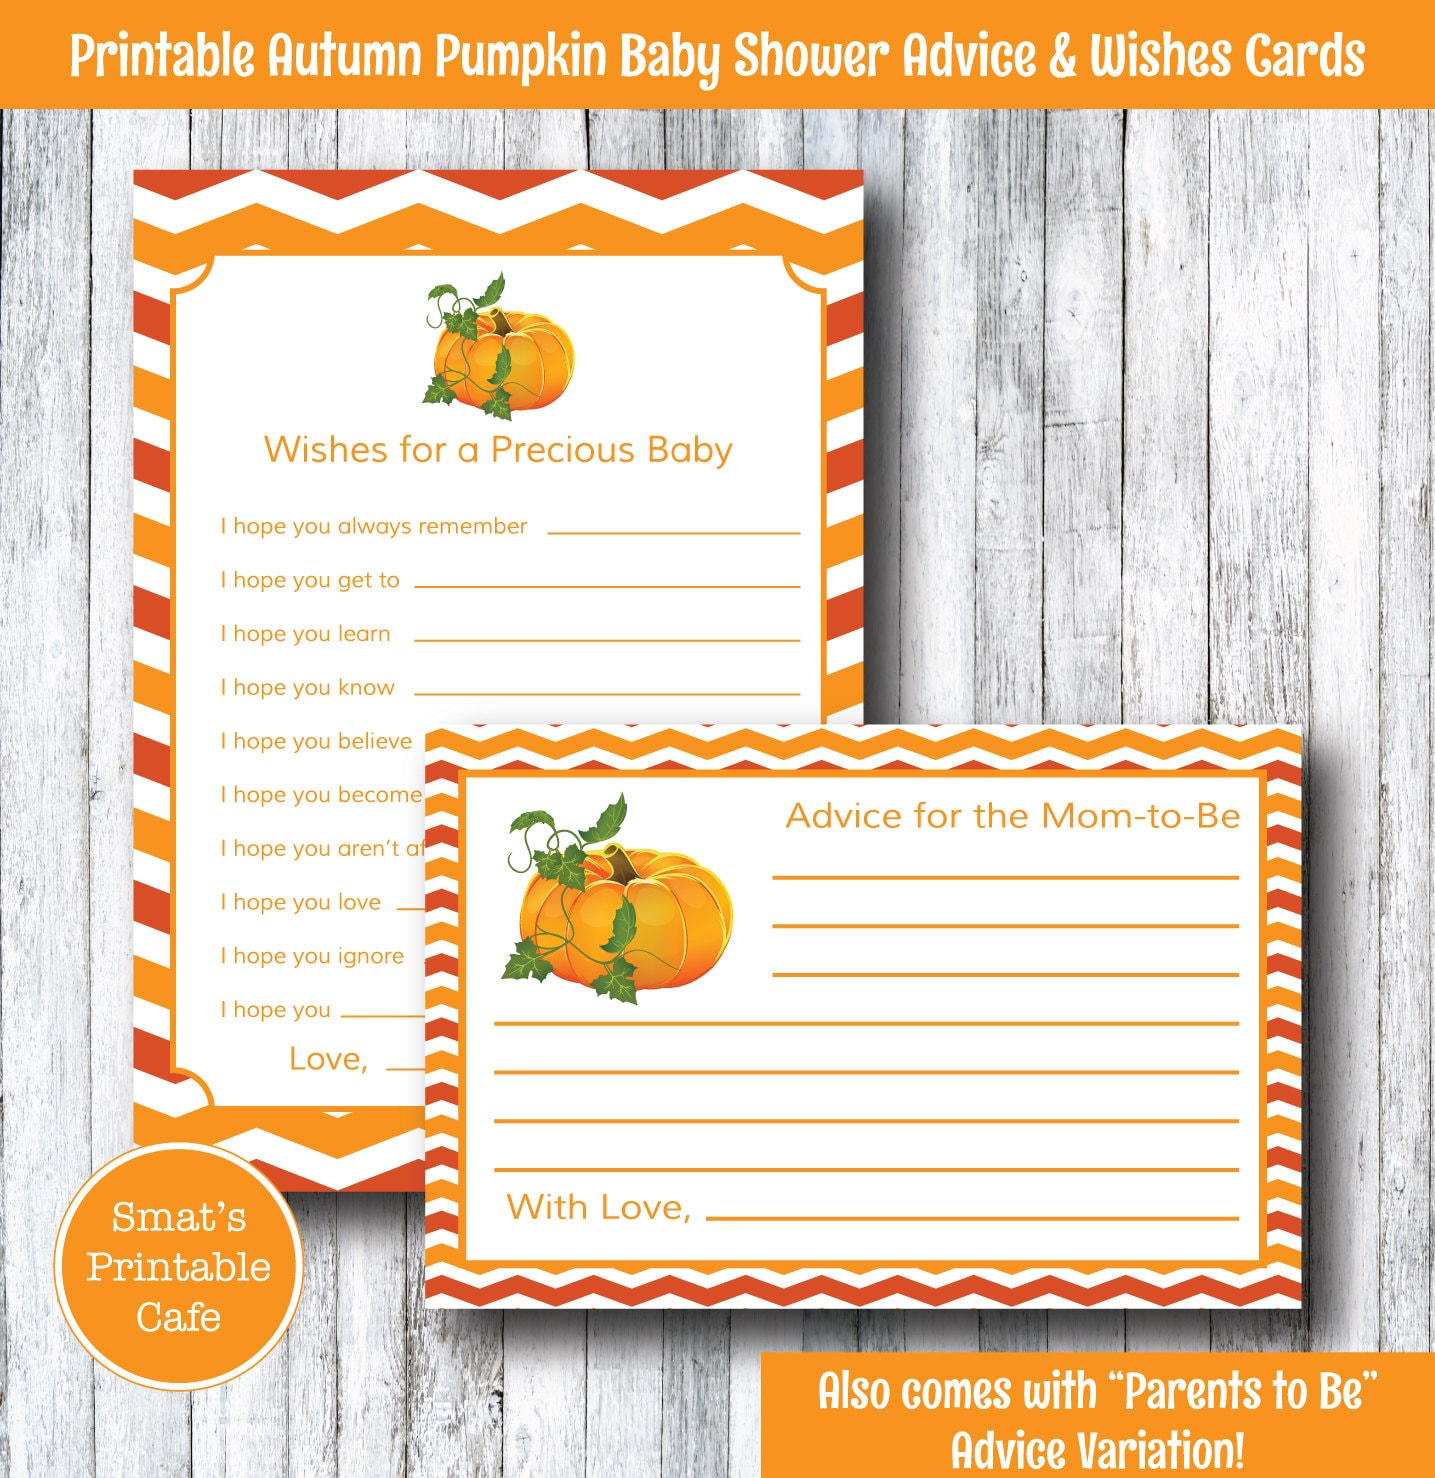 Baby Shower Cards Messages: Autumn Fall Pumpkin Baby Shower Wishes & Advice Cards